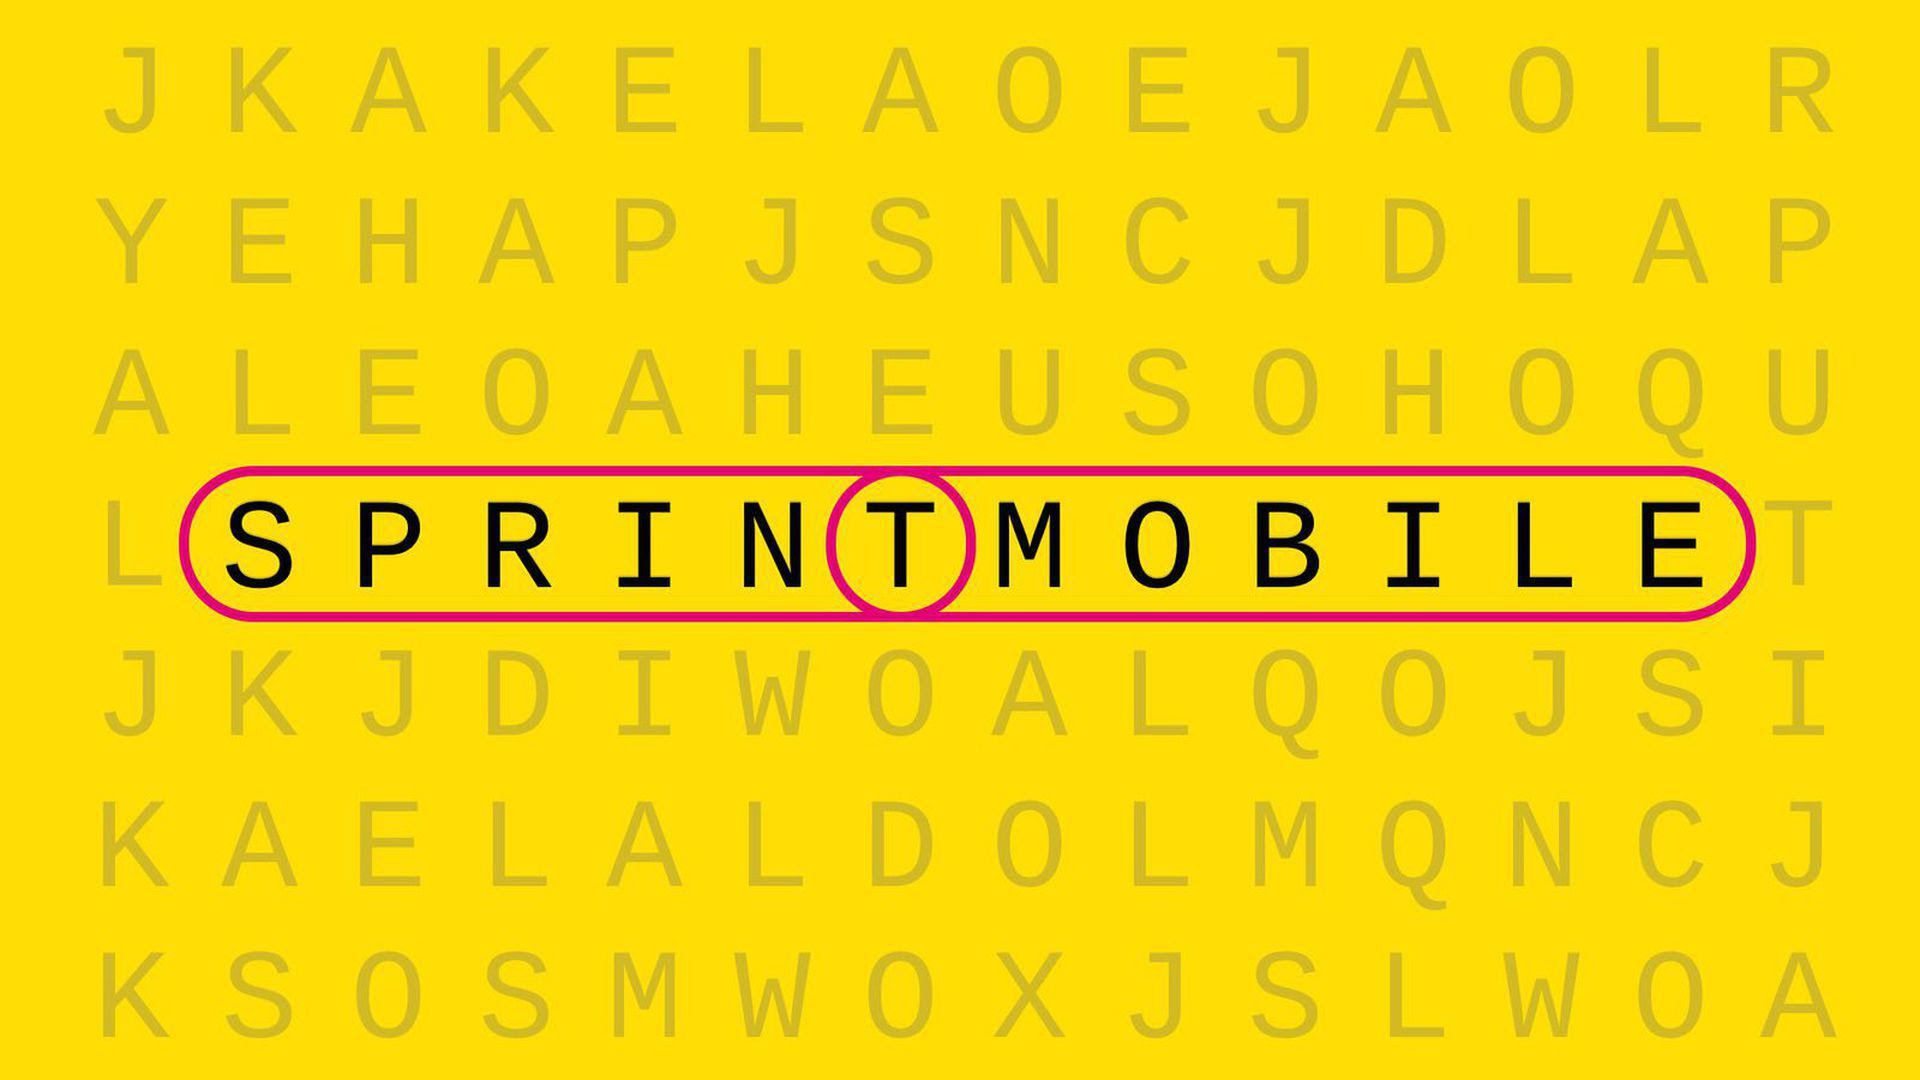 The letters Sprint and T-mobile layed out as if they were on a crossword puzzle in an illustration.